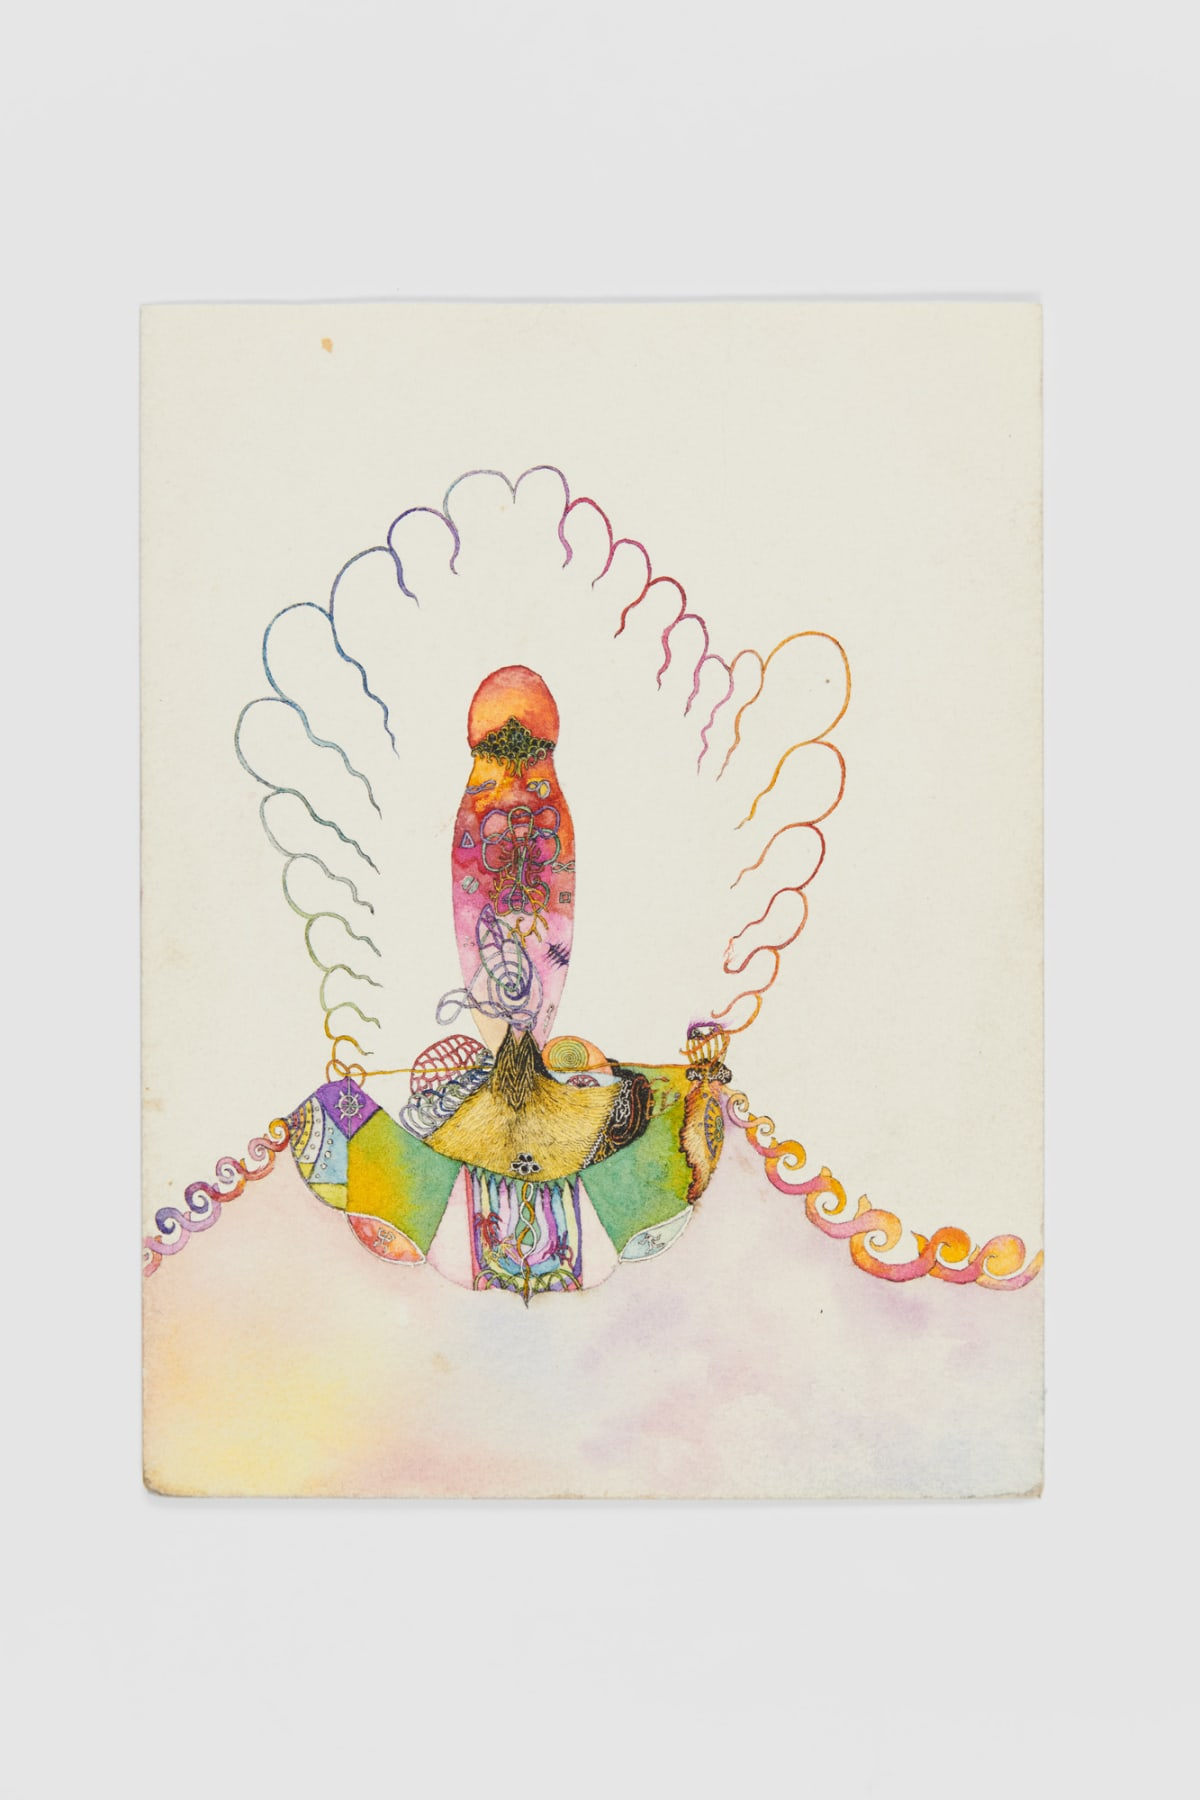 Ann CHURCHILL Coloured drawing (emptying the chalice), 1976 Ink on paper 23.6 x 17.8 cm